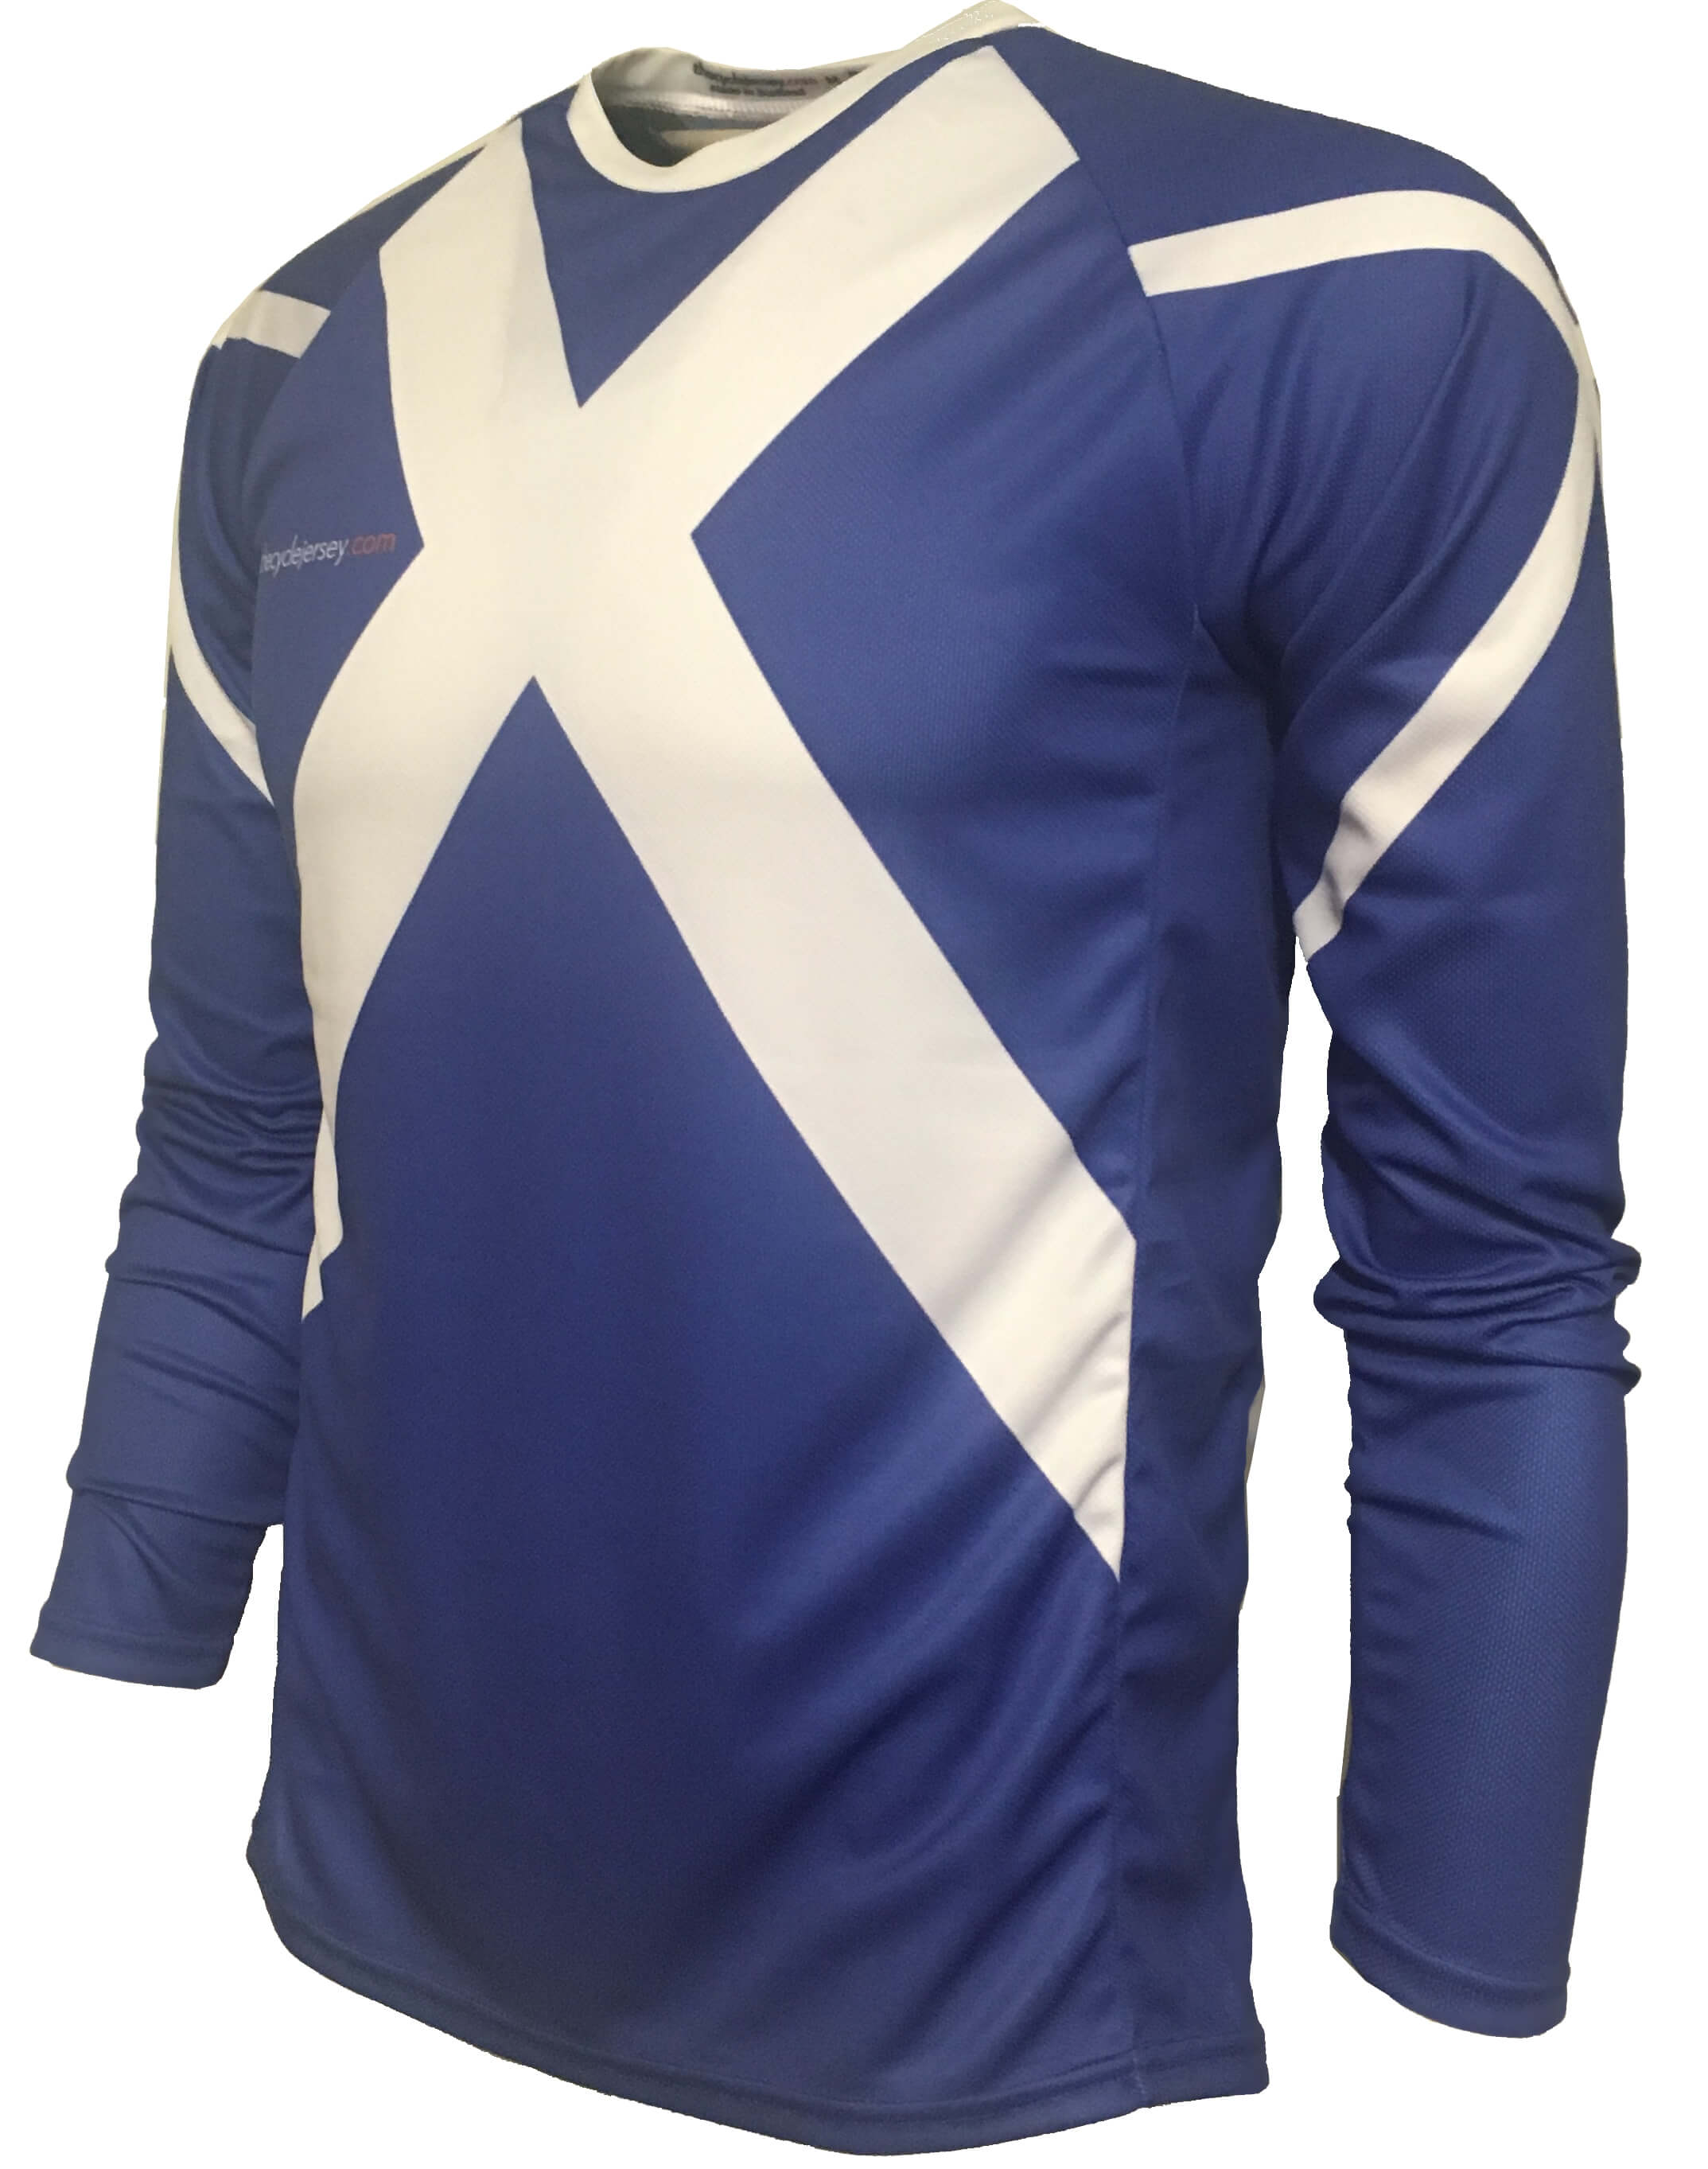 Scotland Saltire Enduro Cycle Jersey Front